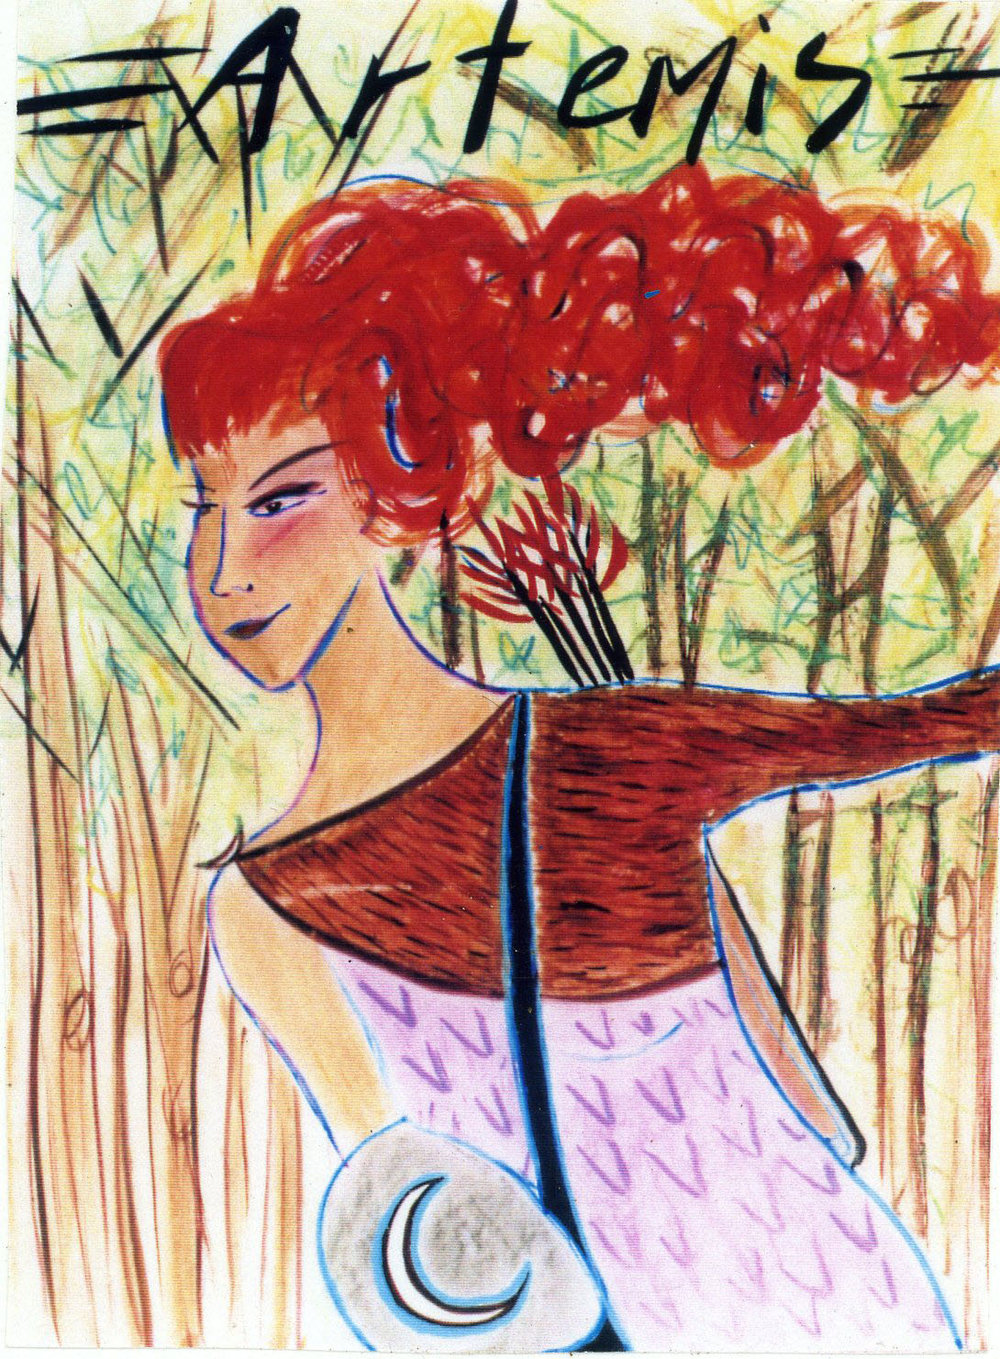 Artemis. Mixed media on board, 24 x 36 inches.© 1997 by Kathy Crabbe